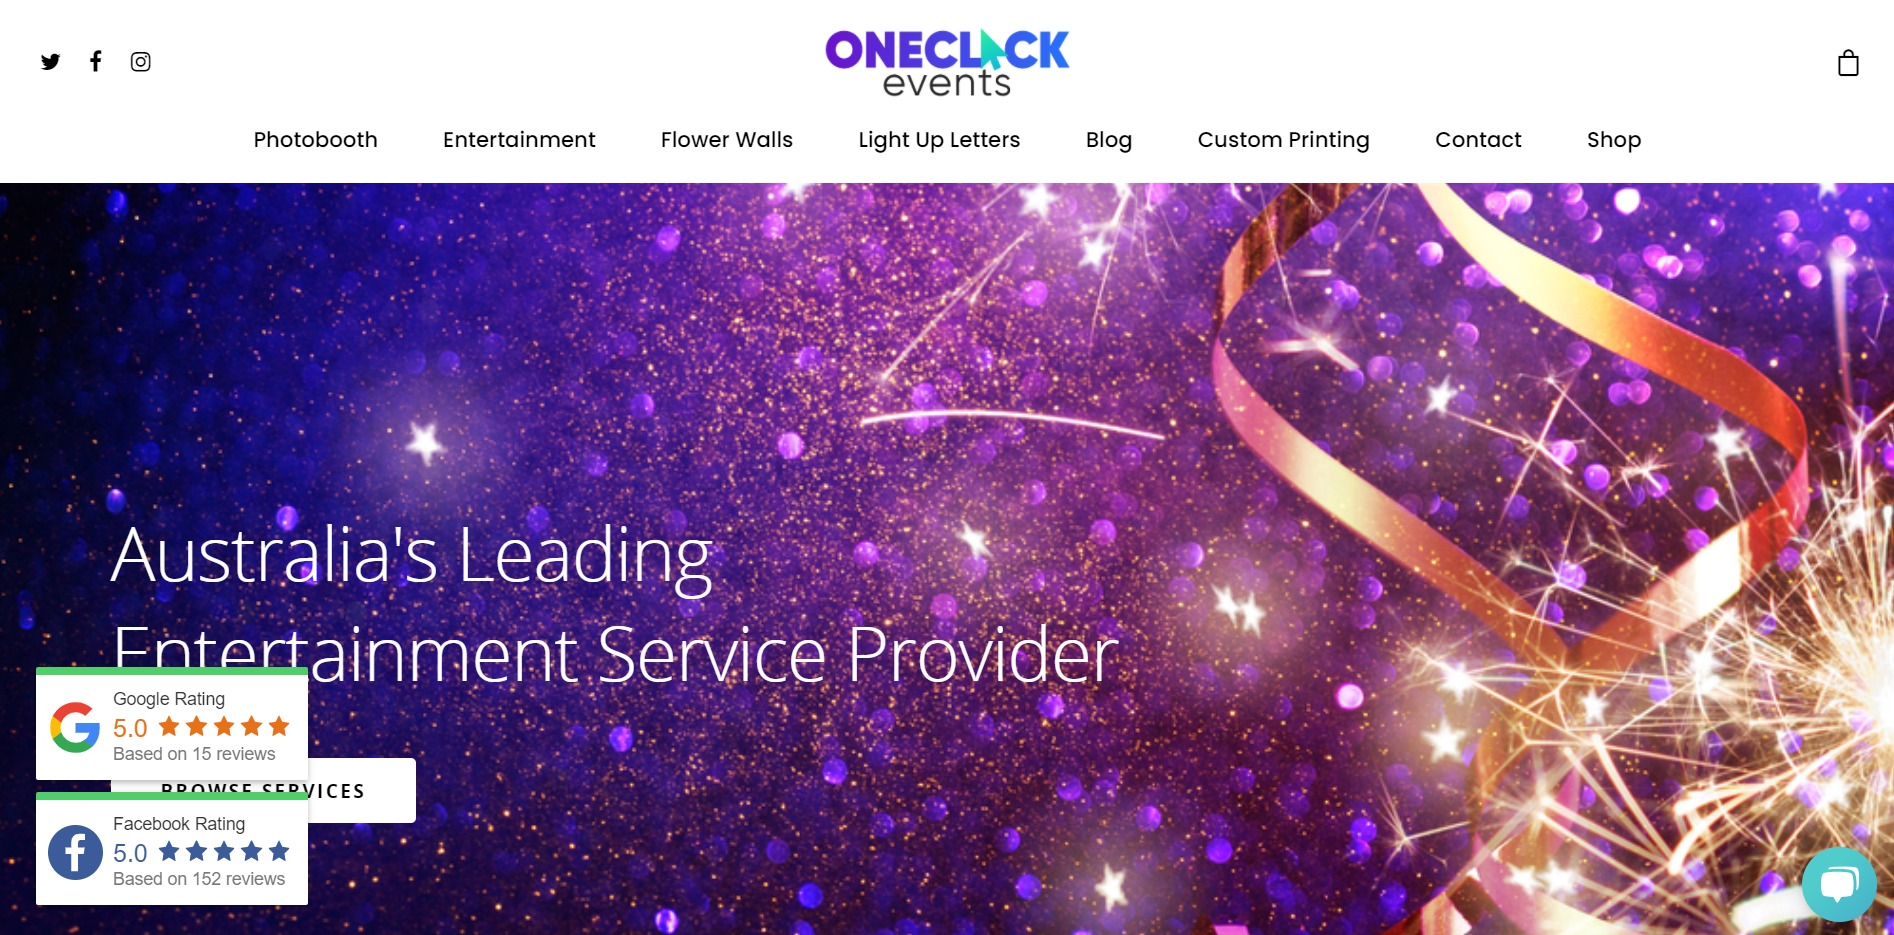 One Click Events